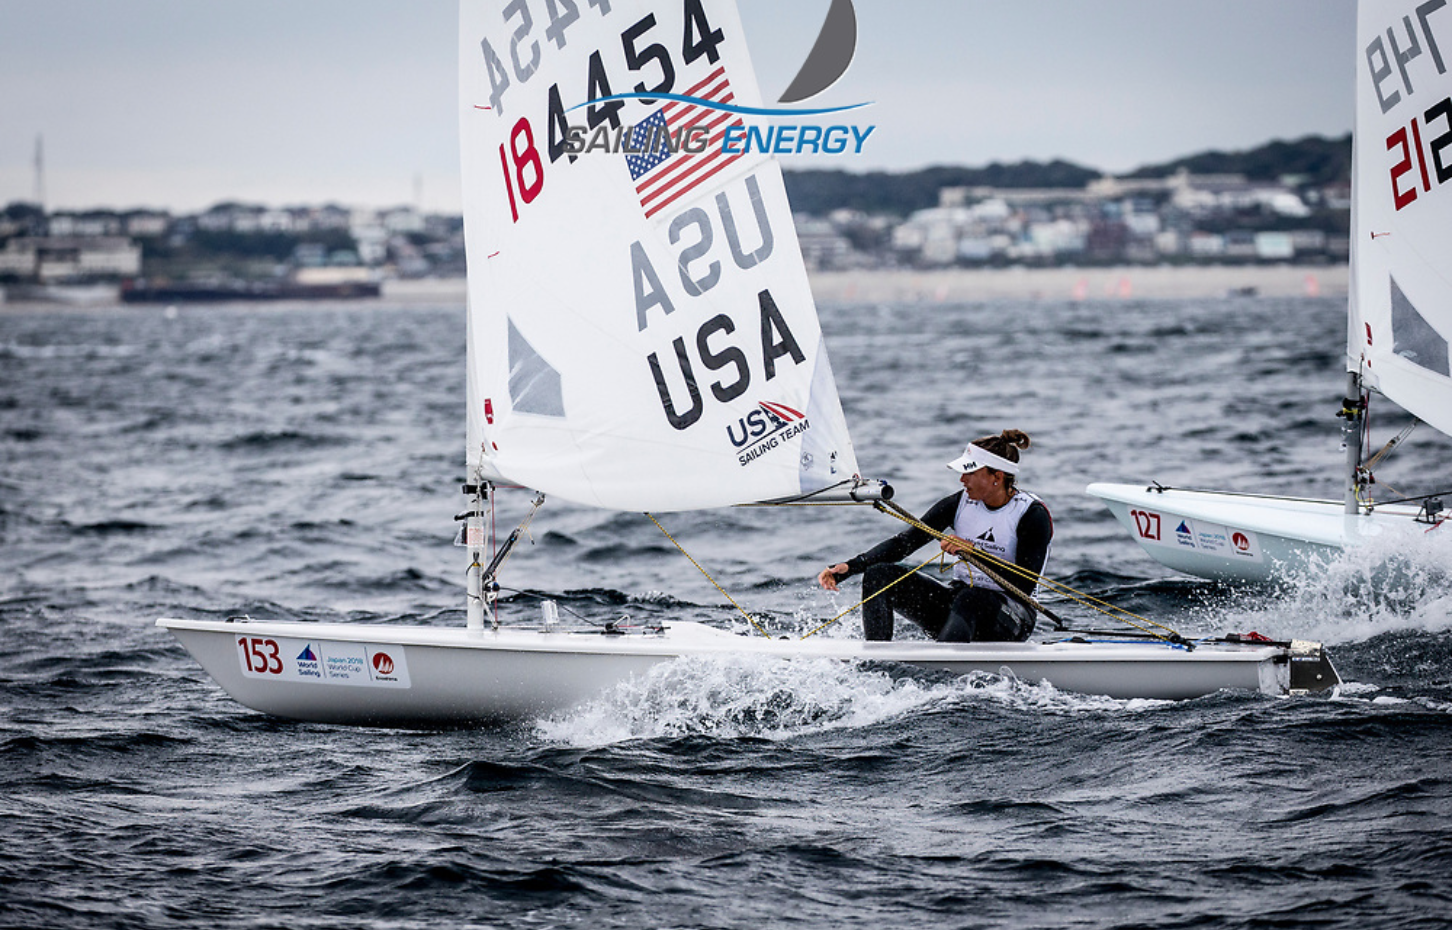 Sailing World: Meet Erika Reineke, the Best Young Female Sailor in the Land - https://www.sailingworld.com/meet-erika-reineke-best-young-female-sailor-in-land/